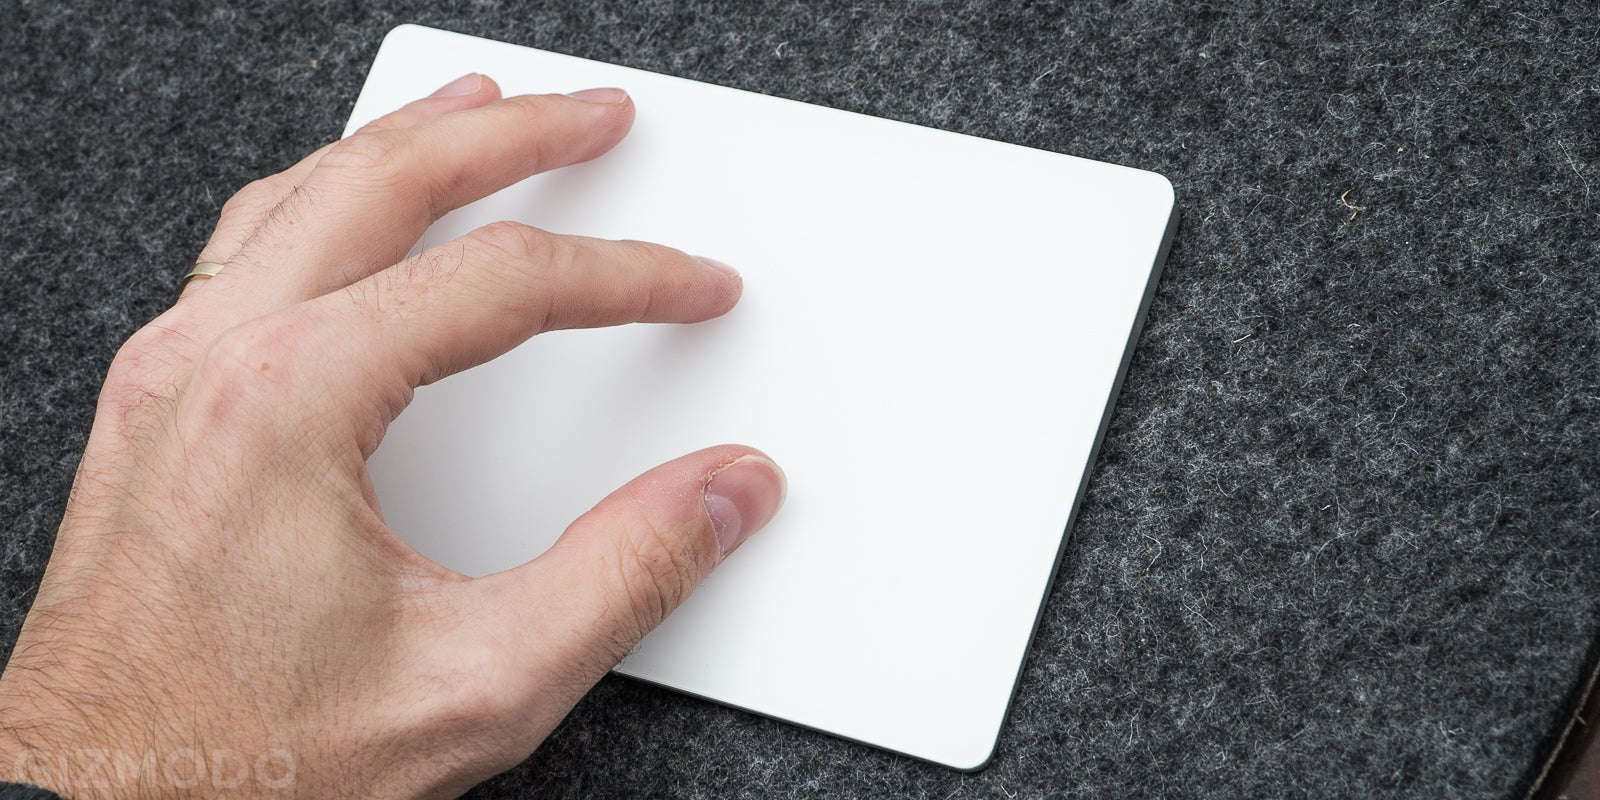 Apple's New Trackpad Is Magical, But Can't Kill My Mouse